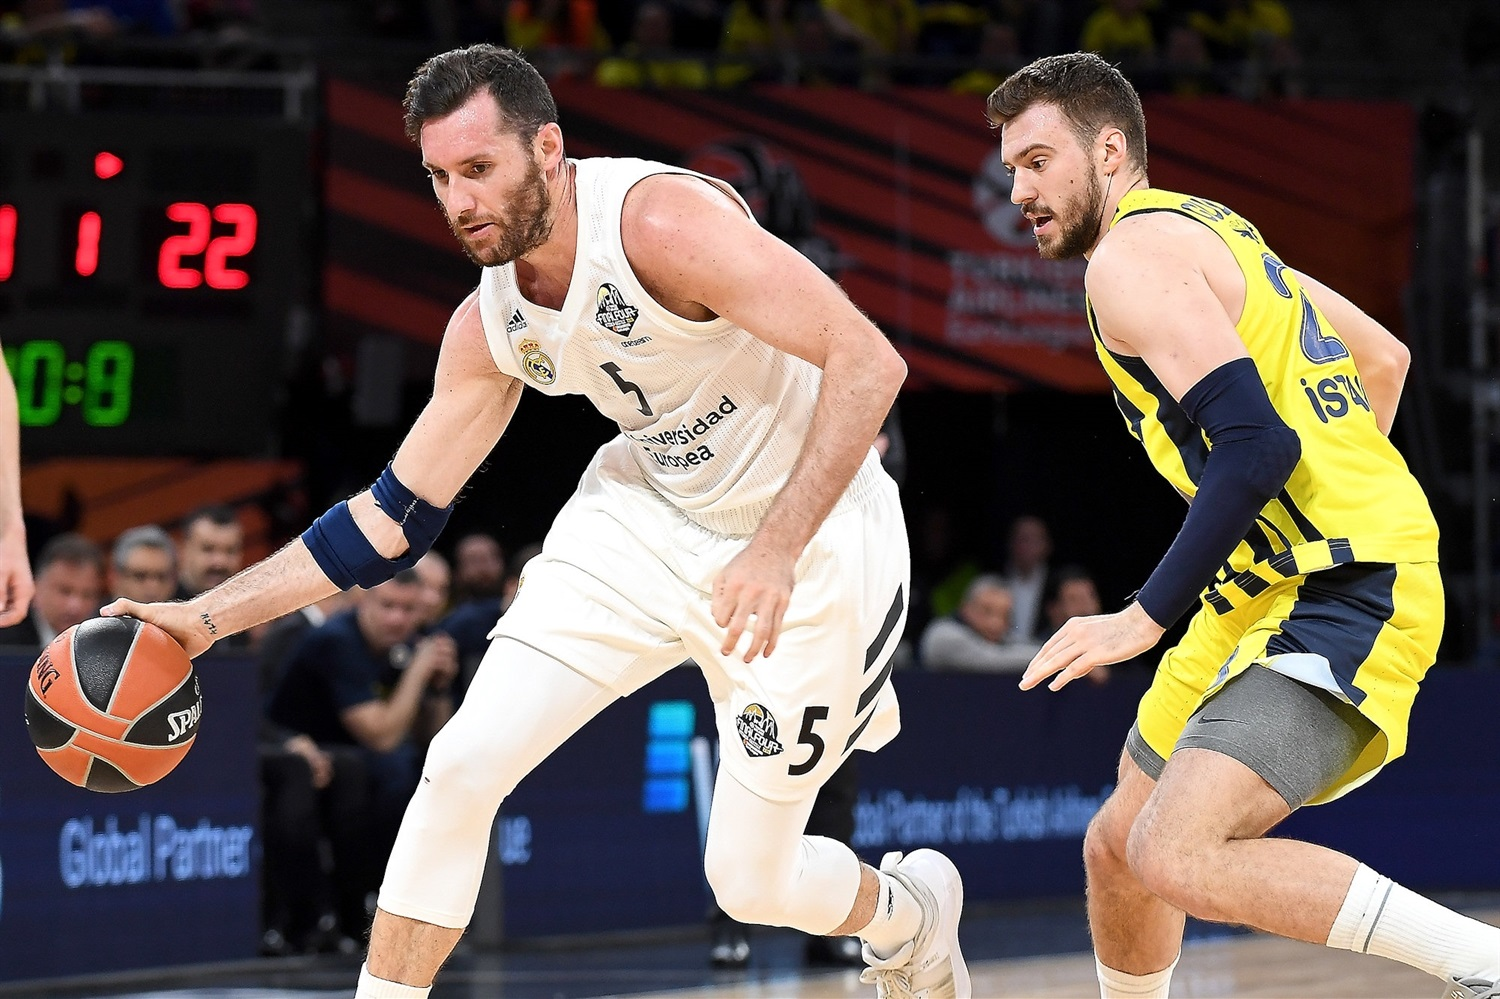 Rudy Fernandez - Real Madrid - Final Four Vitoria-Gasteiz 2019 - EB18